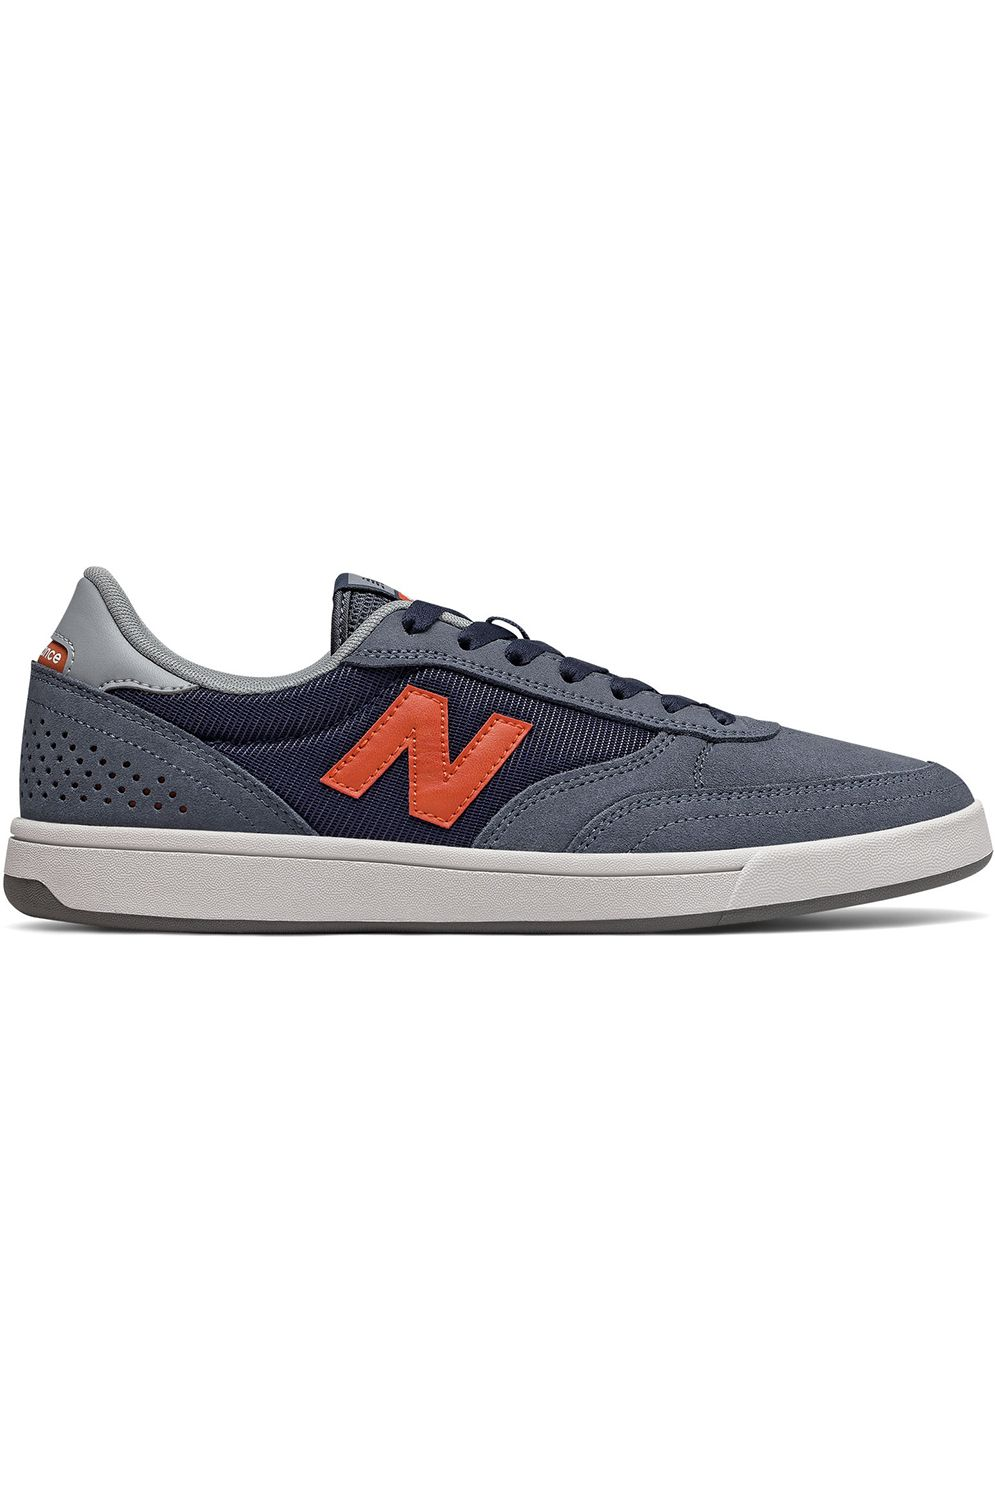 Tenis New Balance NM440 Navy/Grey